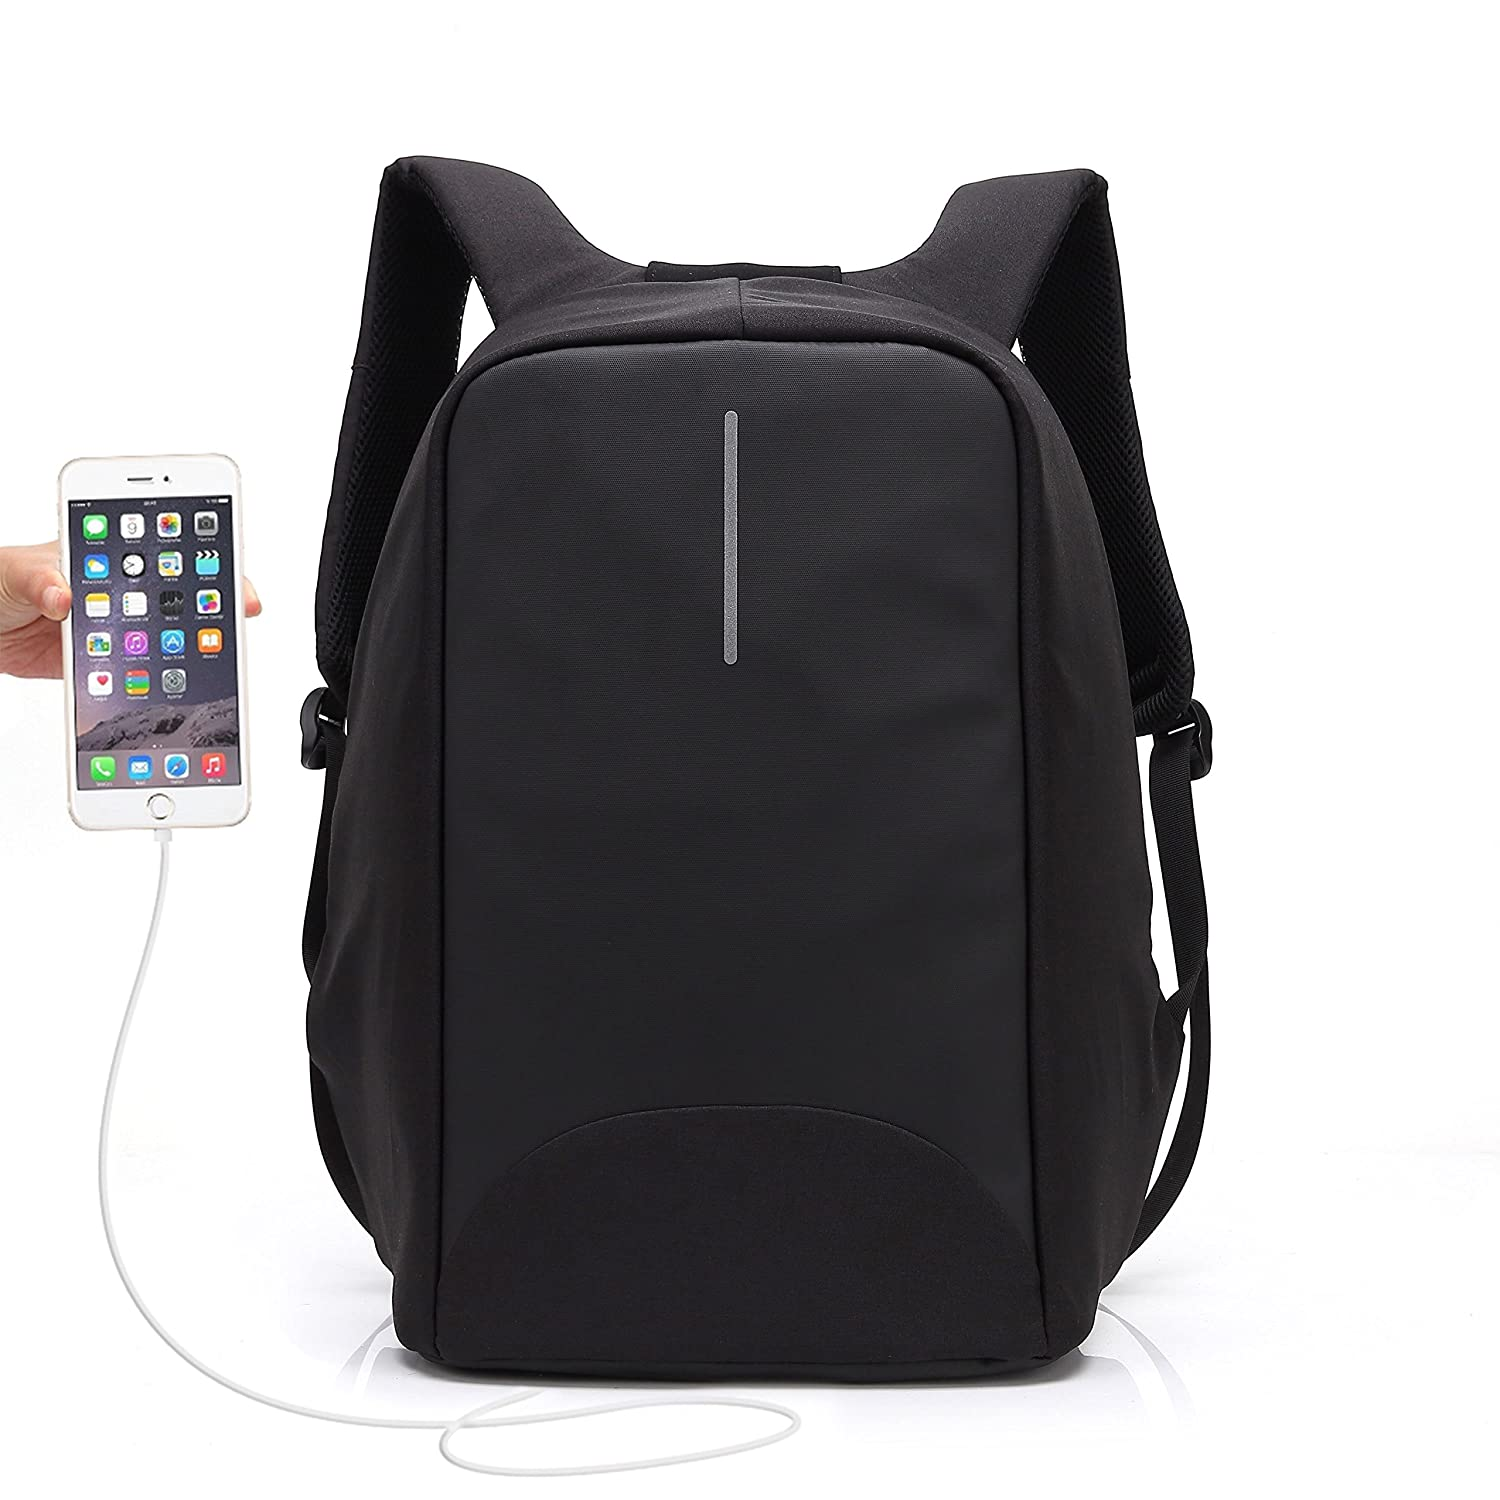 Anti Theft Charging Backpack, UBaymax Security Backpack with USB Charging Port 15.6